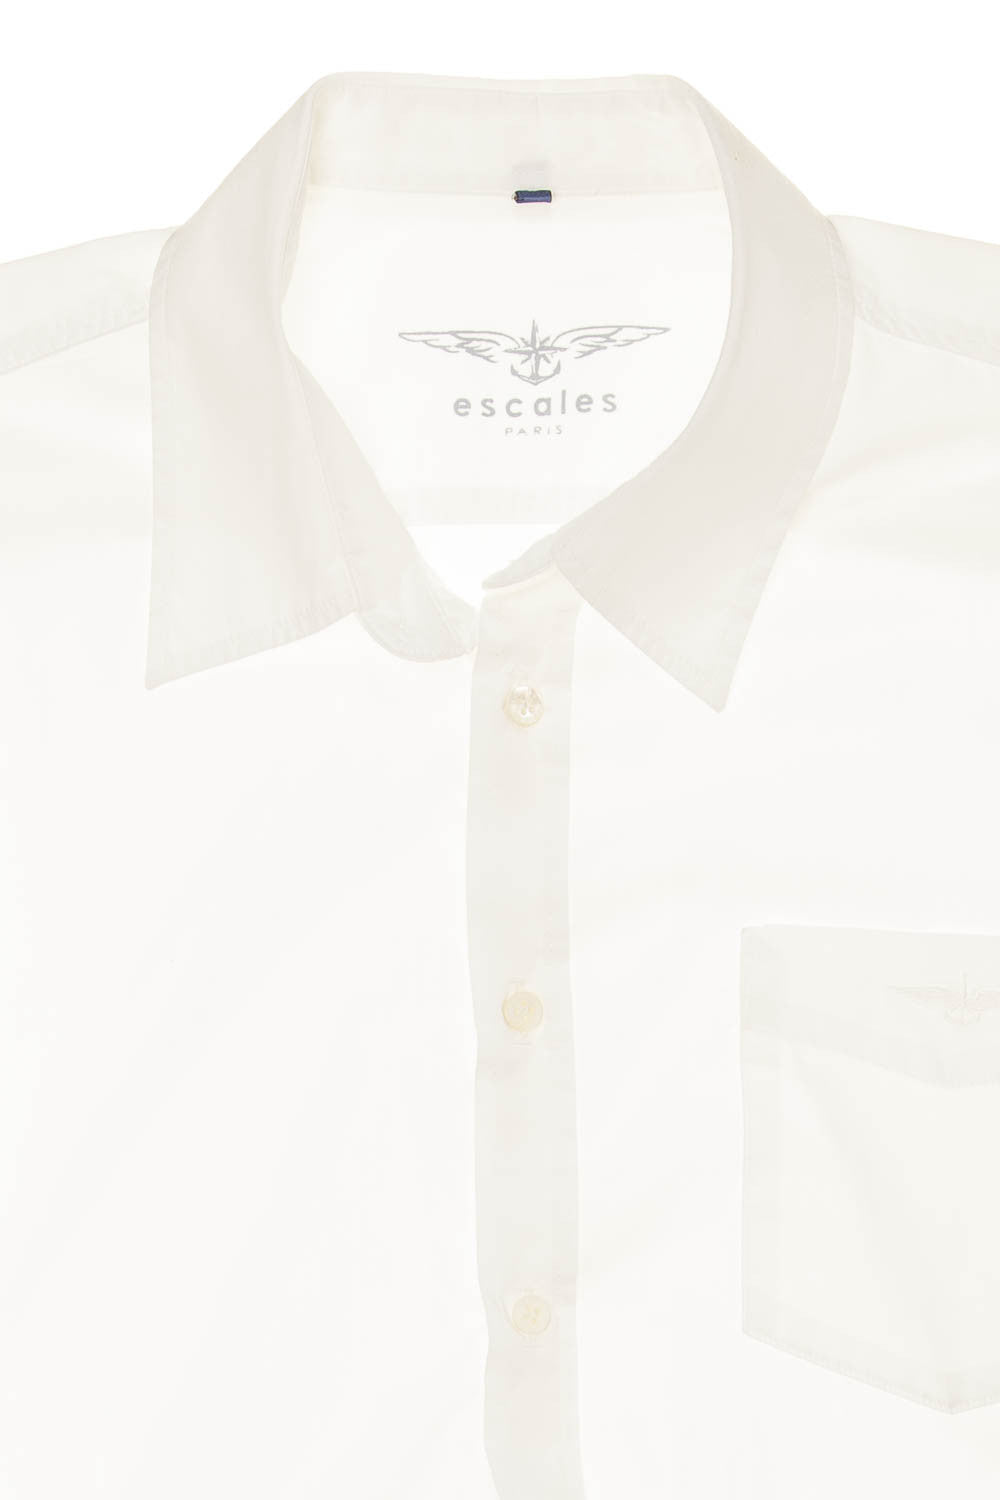 aa5bad136e4ebc Escales - White Long Sleeve Button Up Blouse - L – LUXHAVE